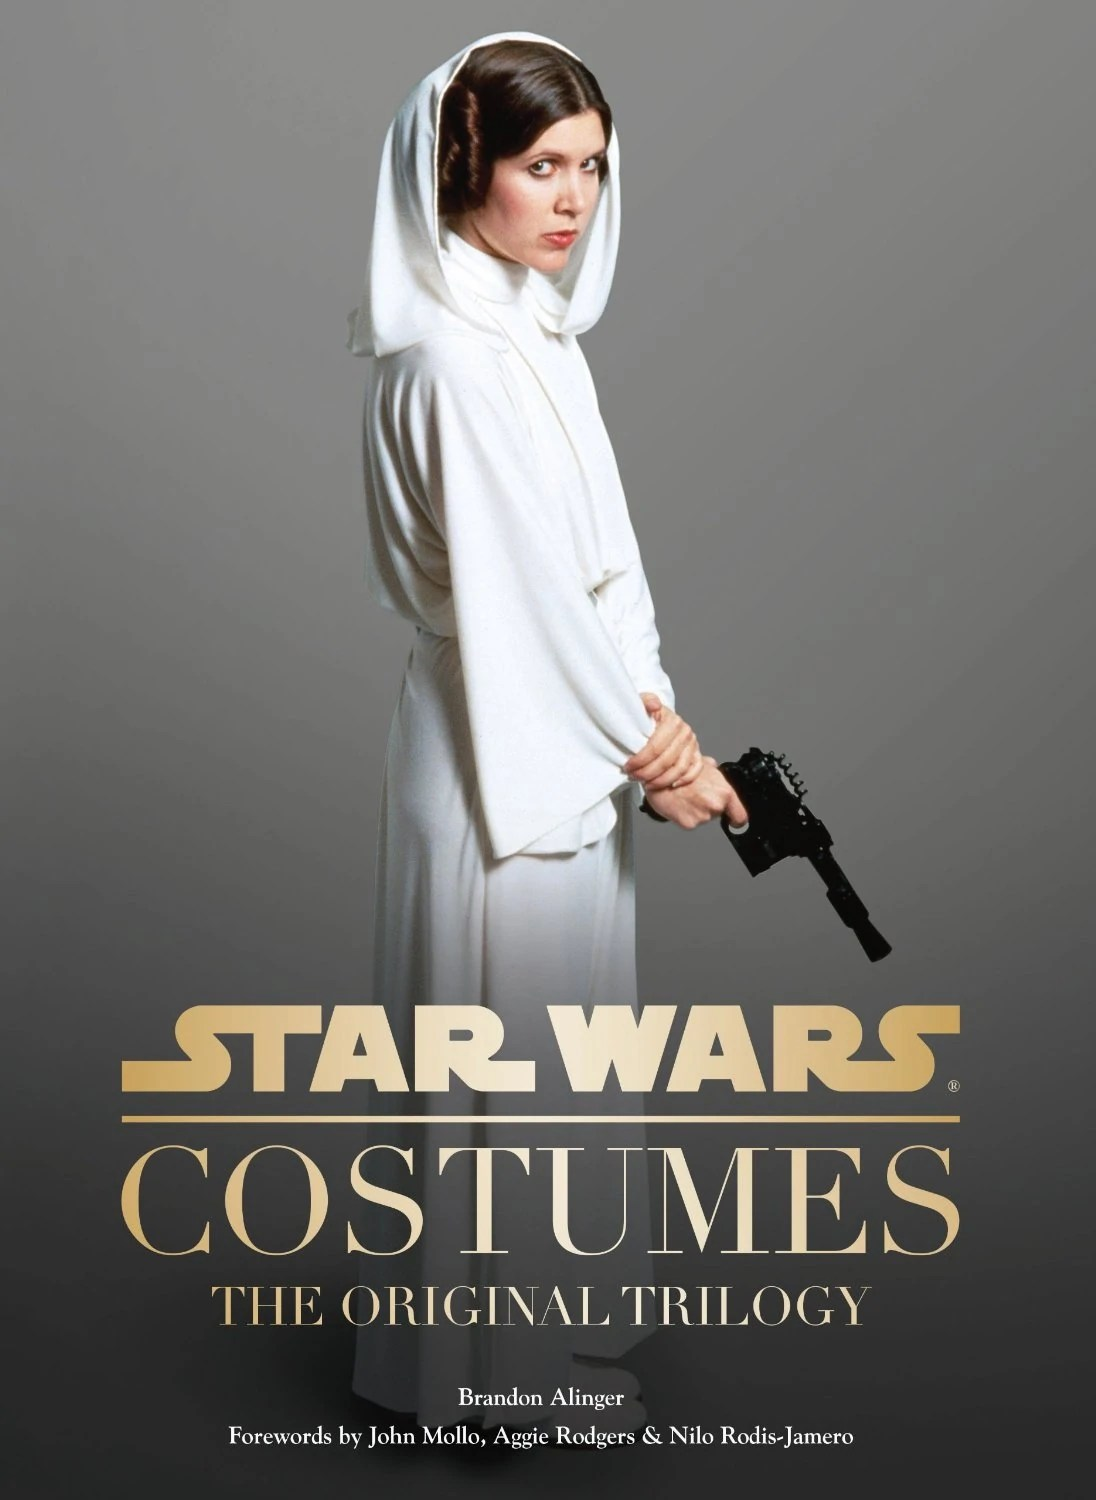 Libros Star Wars Pdf Star Wars Costumes The Original Trilogy Wookieepedia Fandom